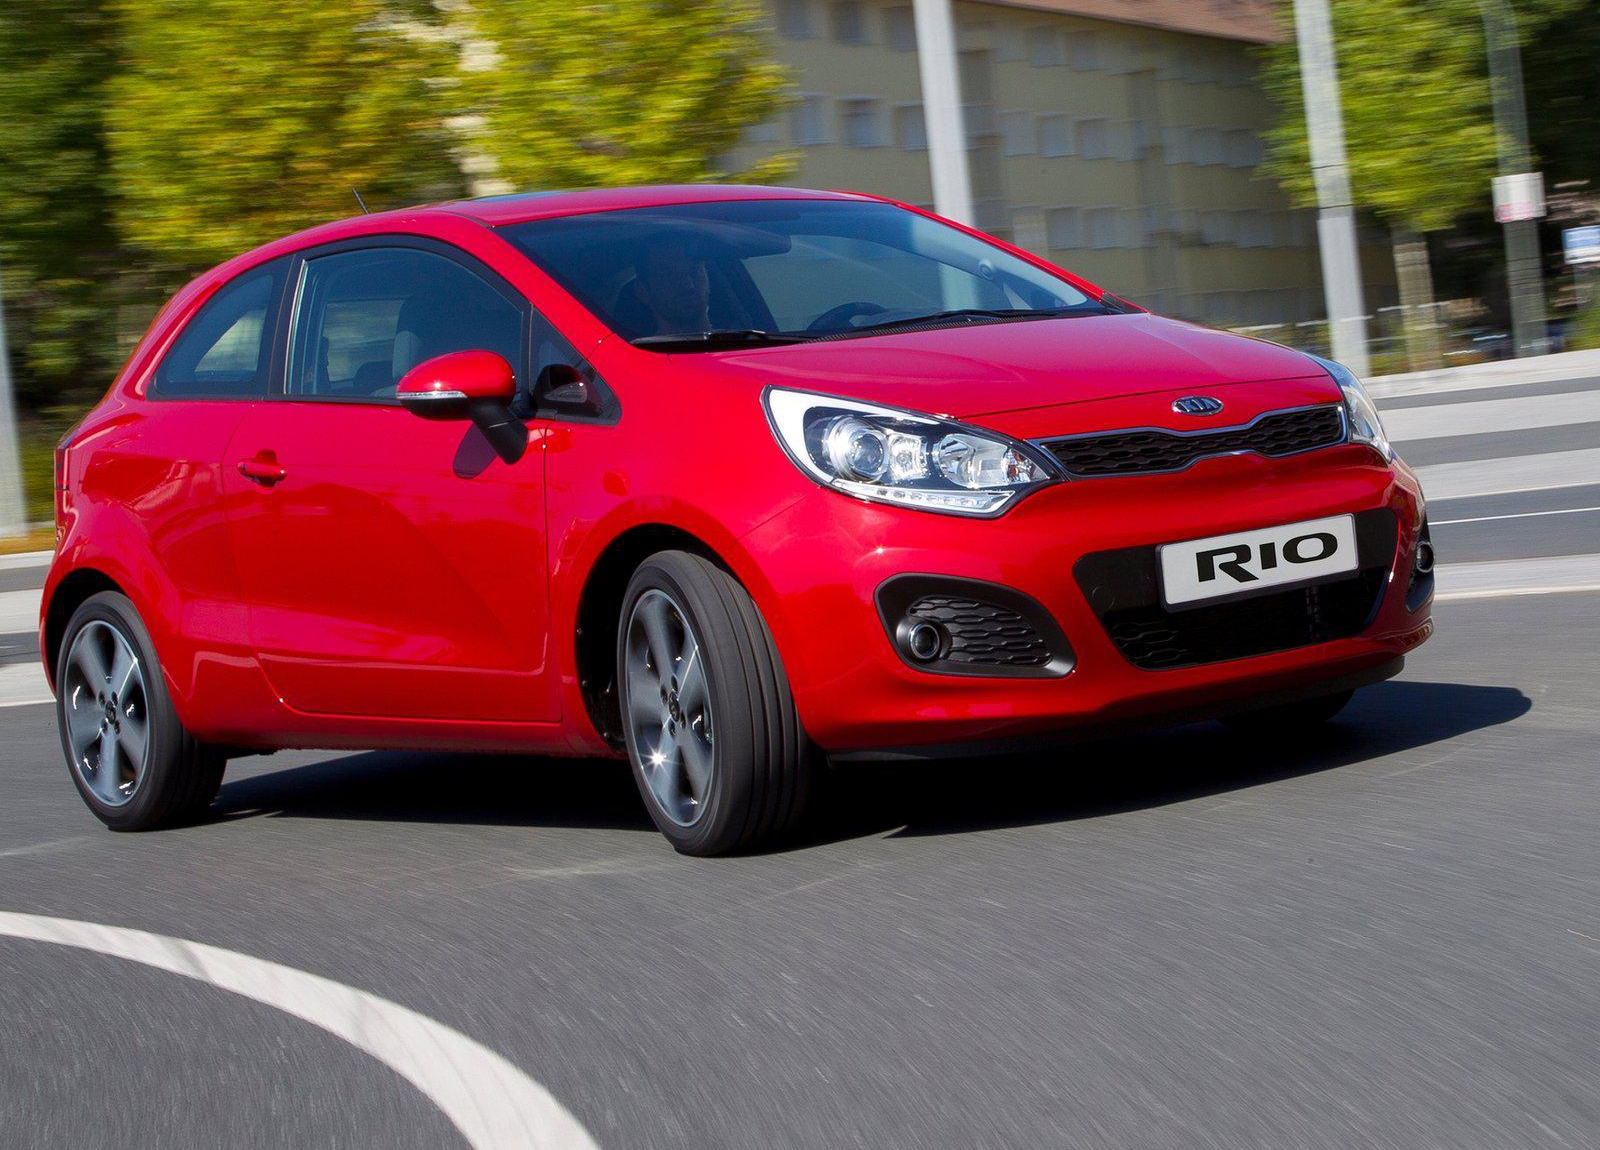 2018 Kia Rio 3 door photo - 5